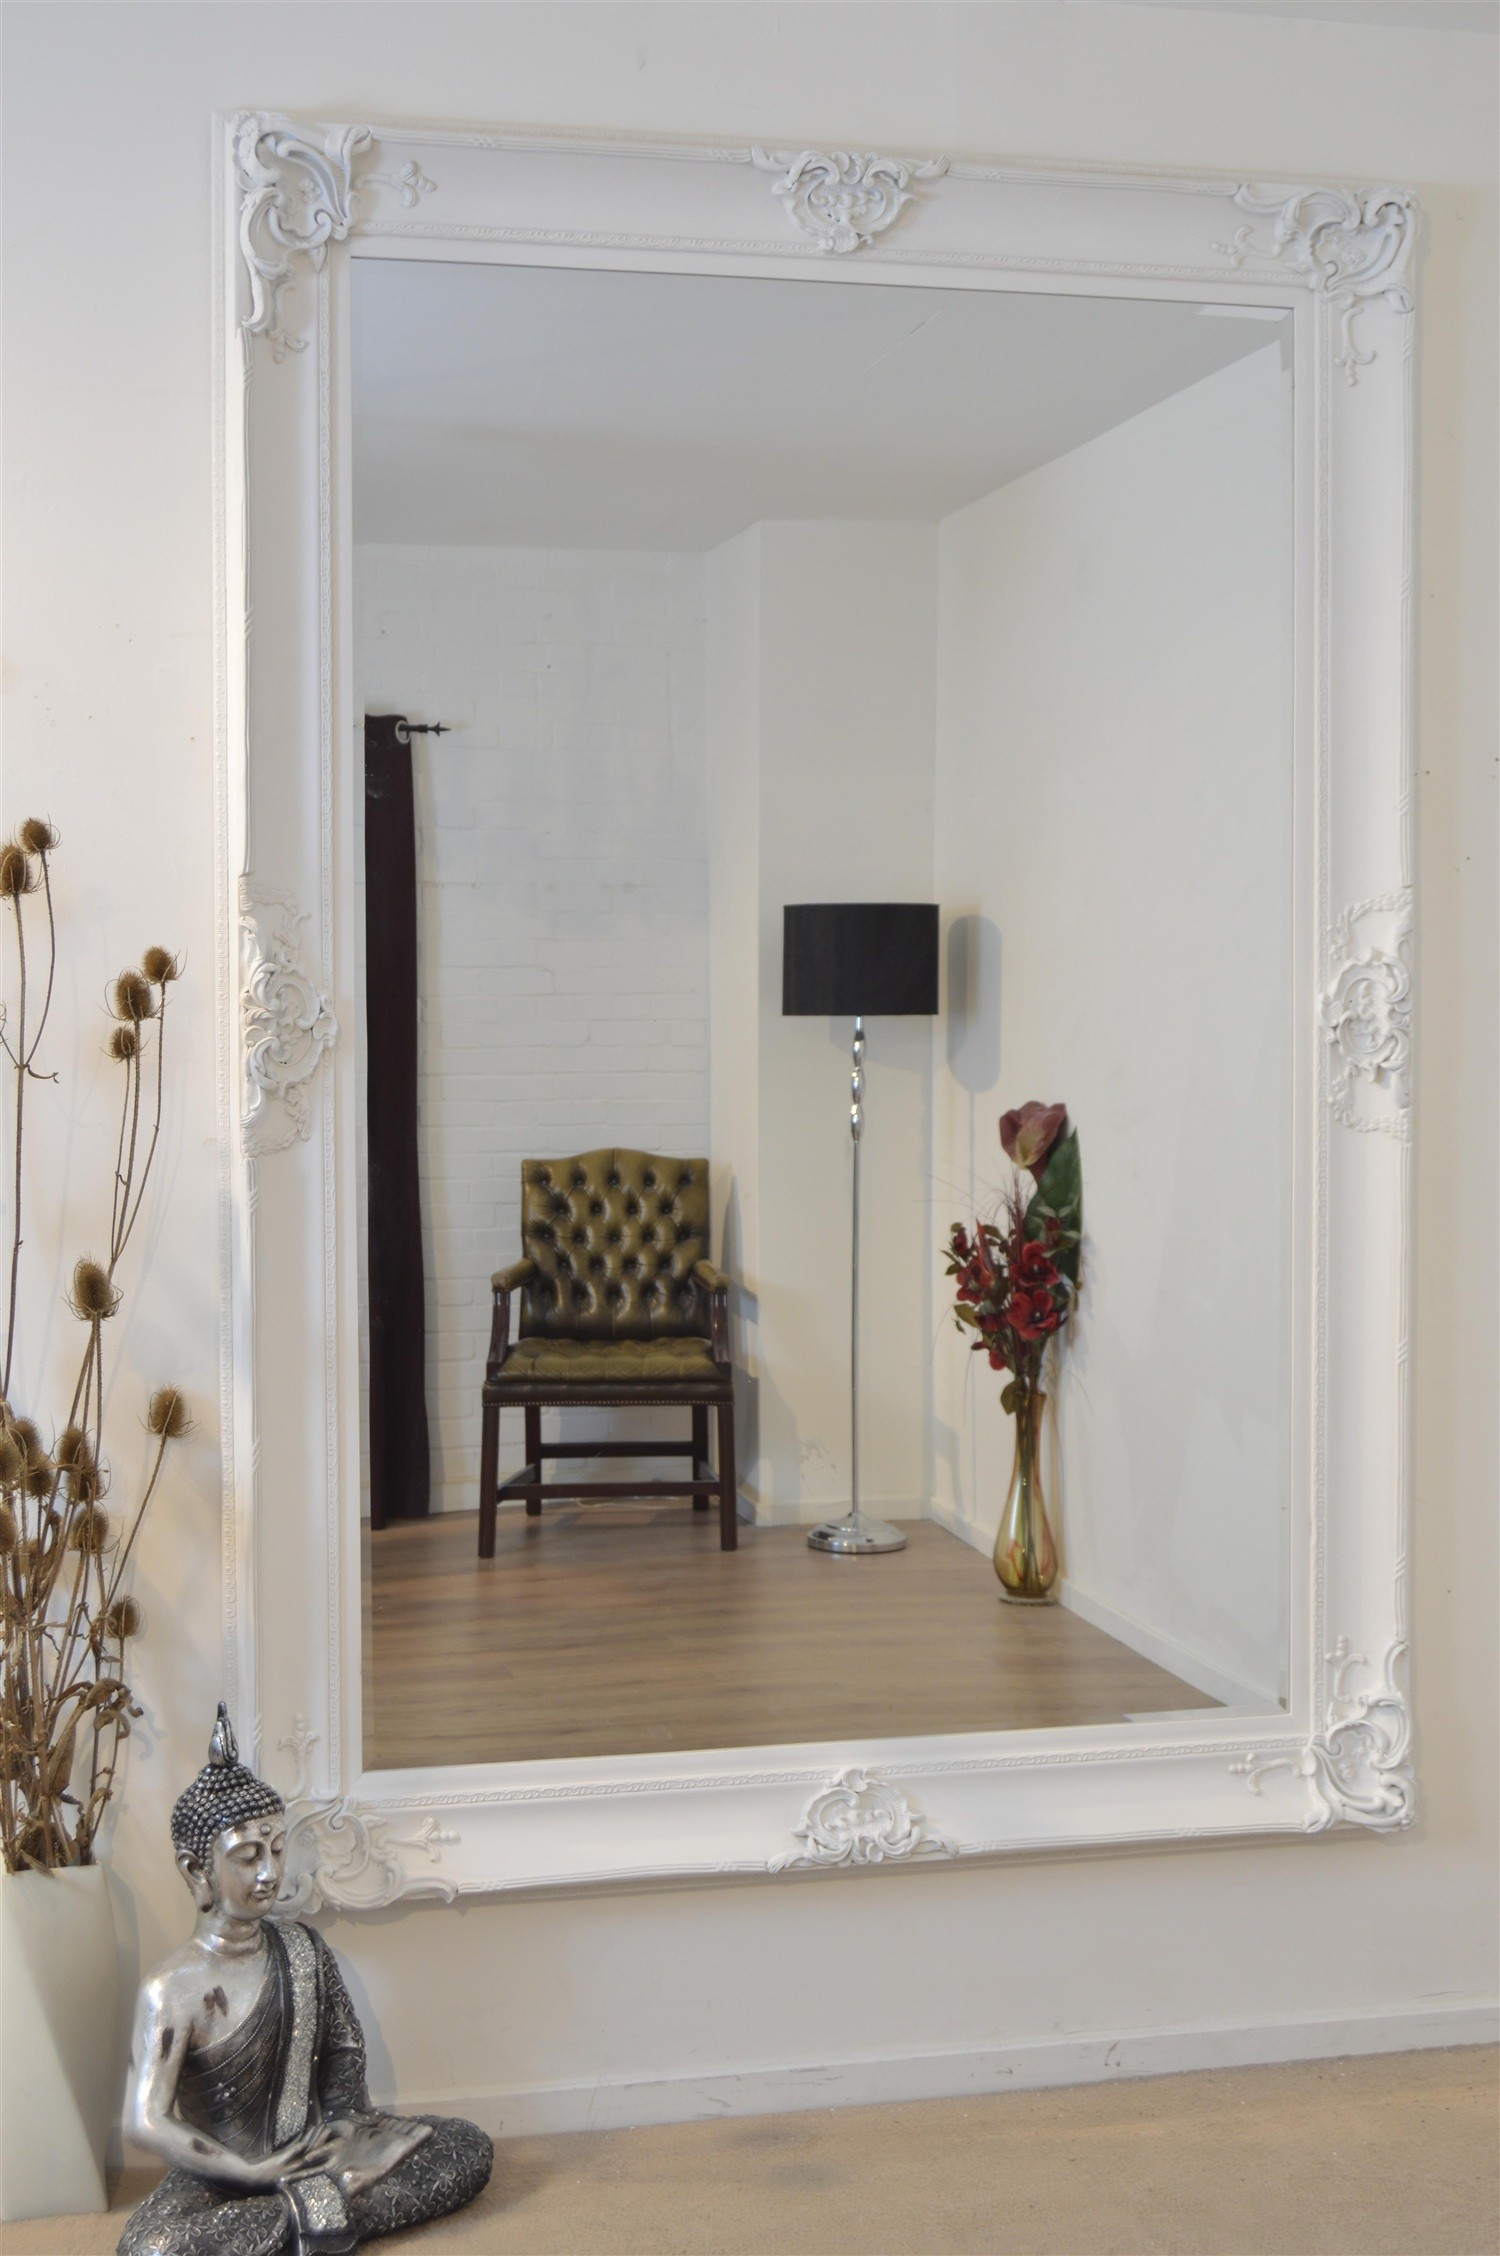 White Decorative Wall Mirror Inarace Pertaining To Large Ornate Wall Mirrors (View 12 of 15)